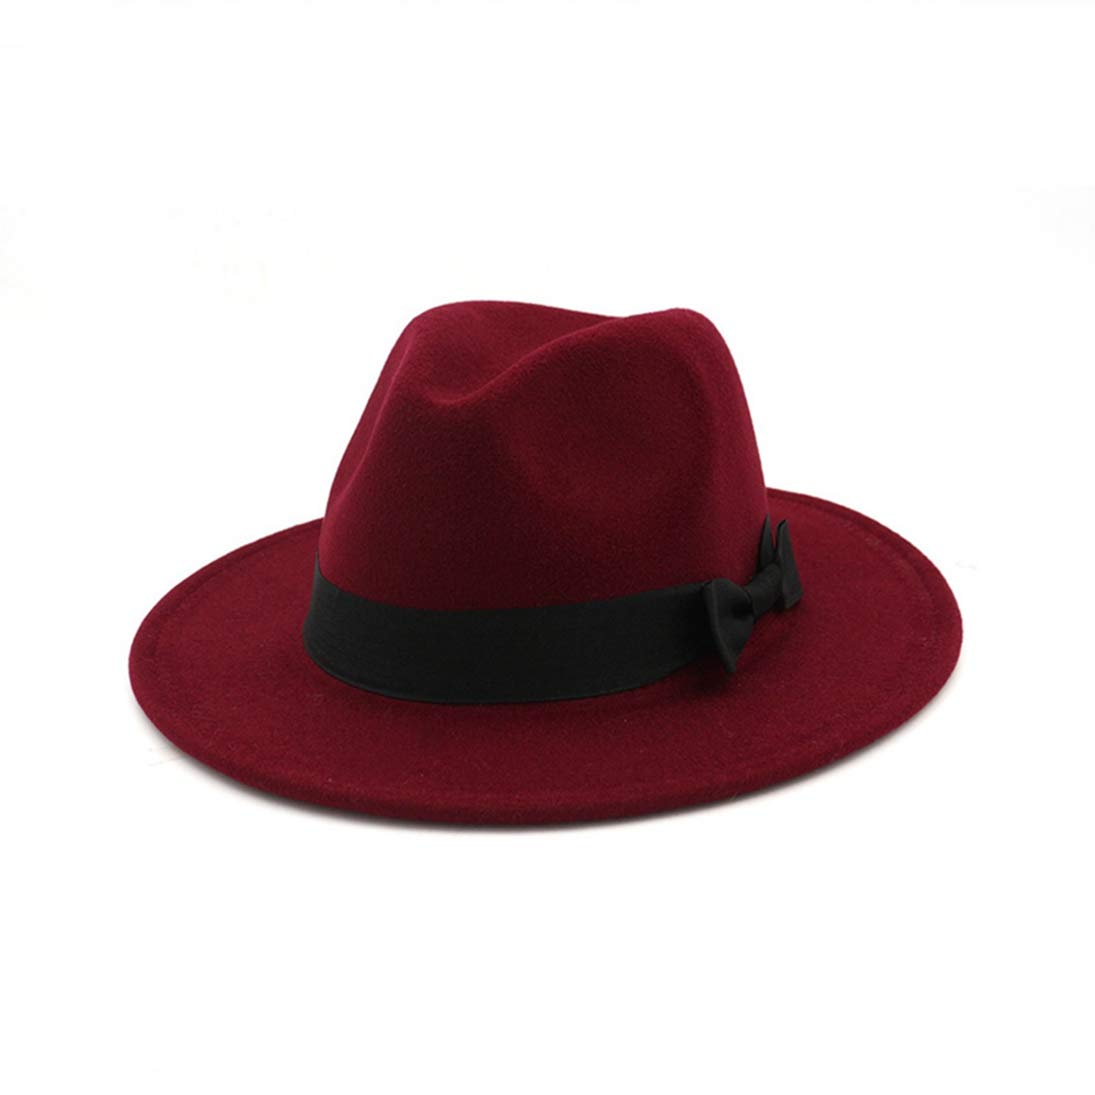 Wool Felt Wide Brim Fedora Hats for Men Women Unisex Classic Trilby Jazz Hat with Black Bowknot Band